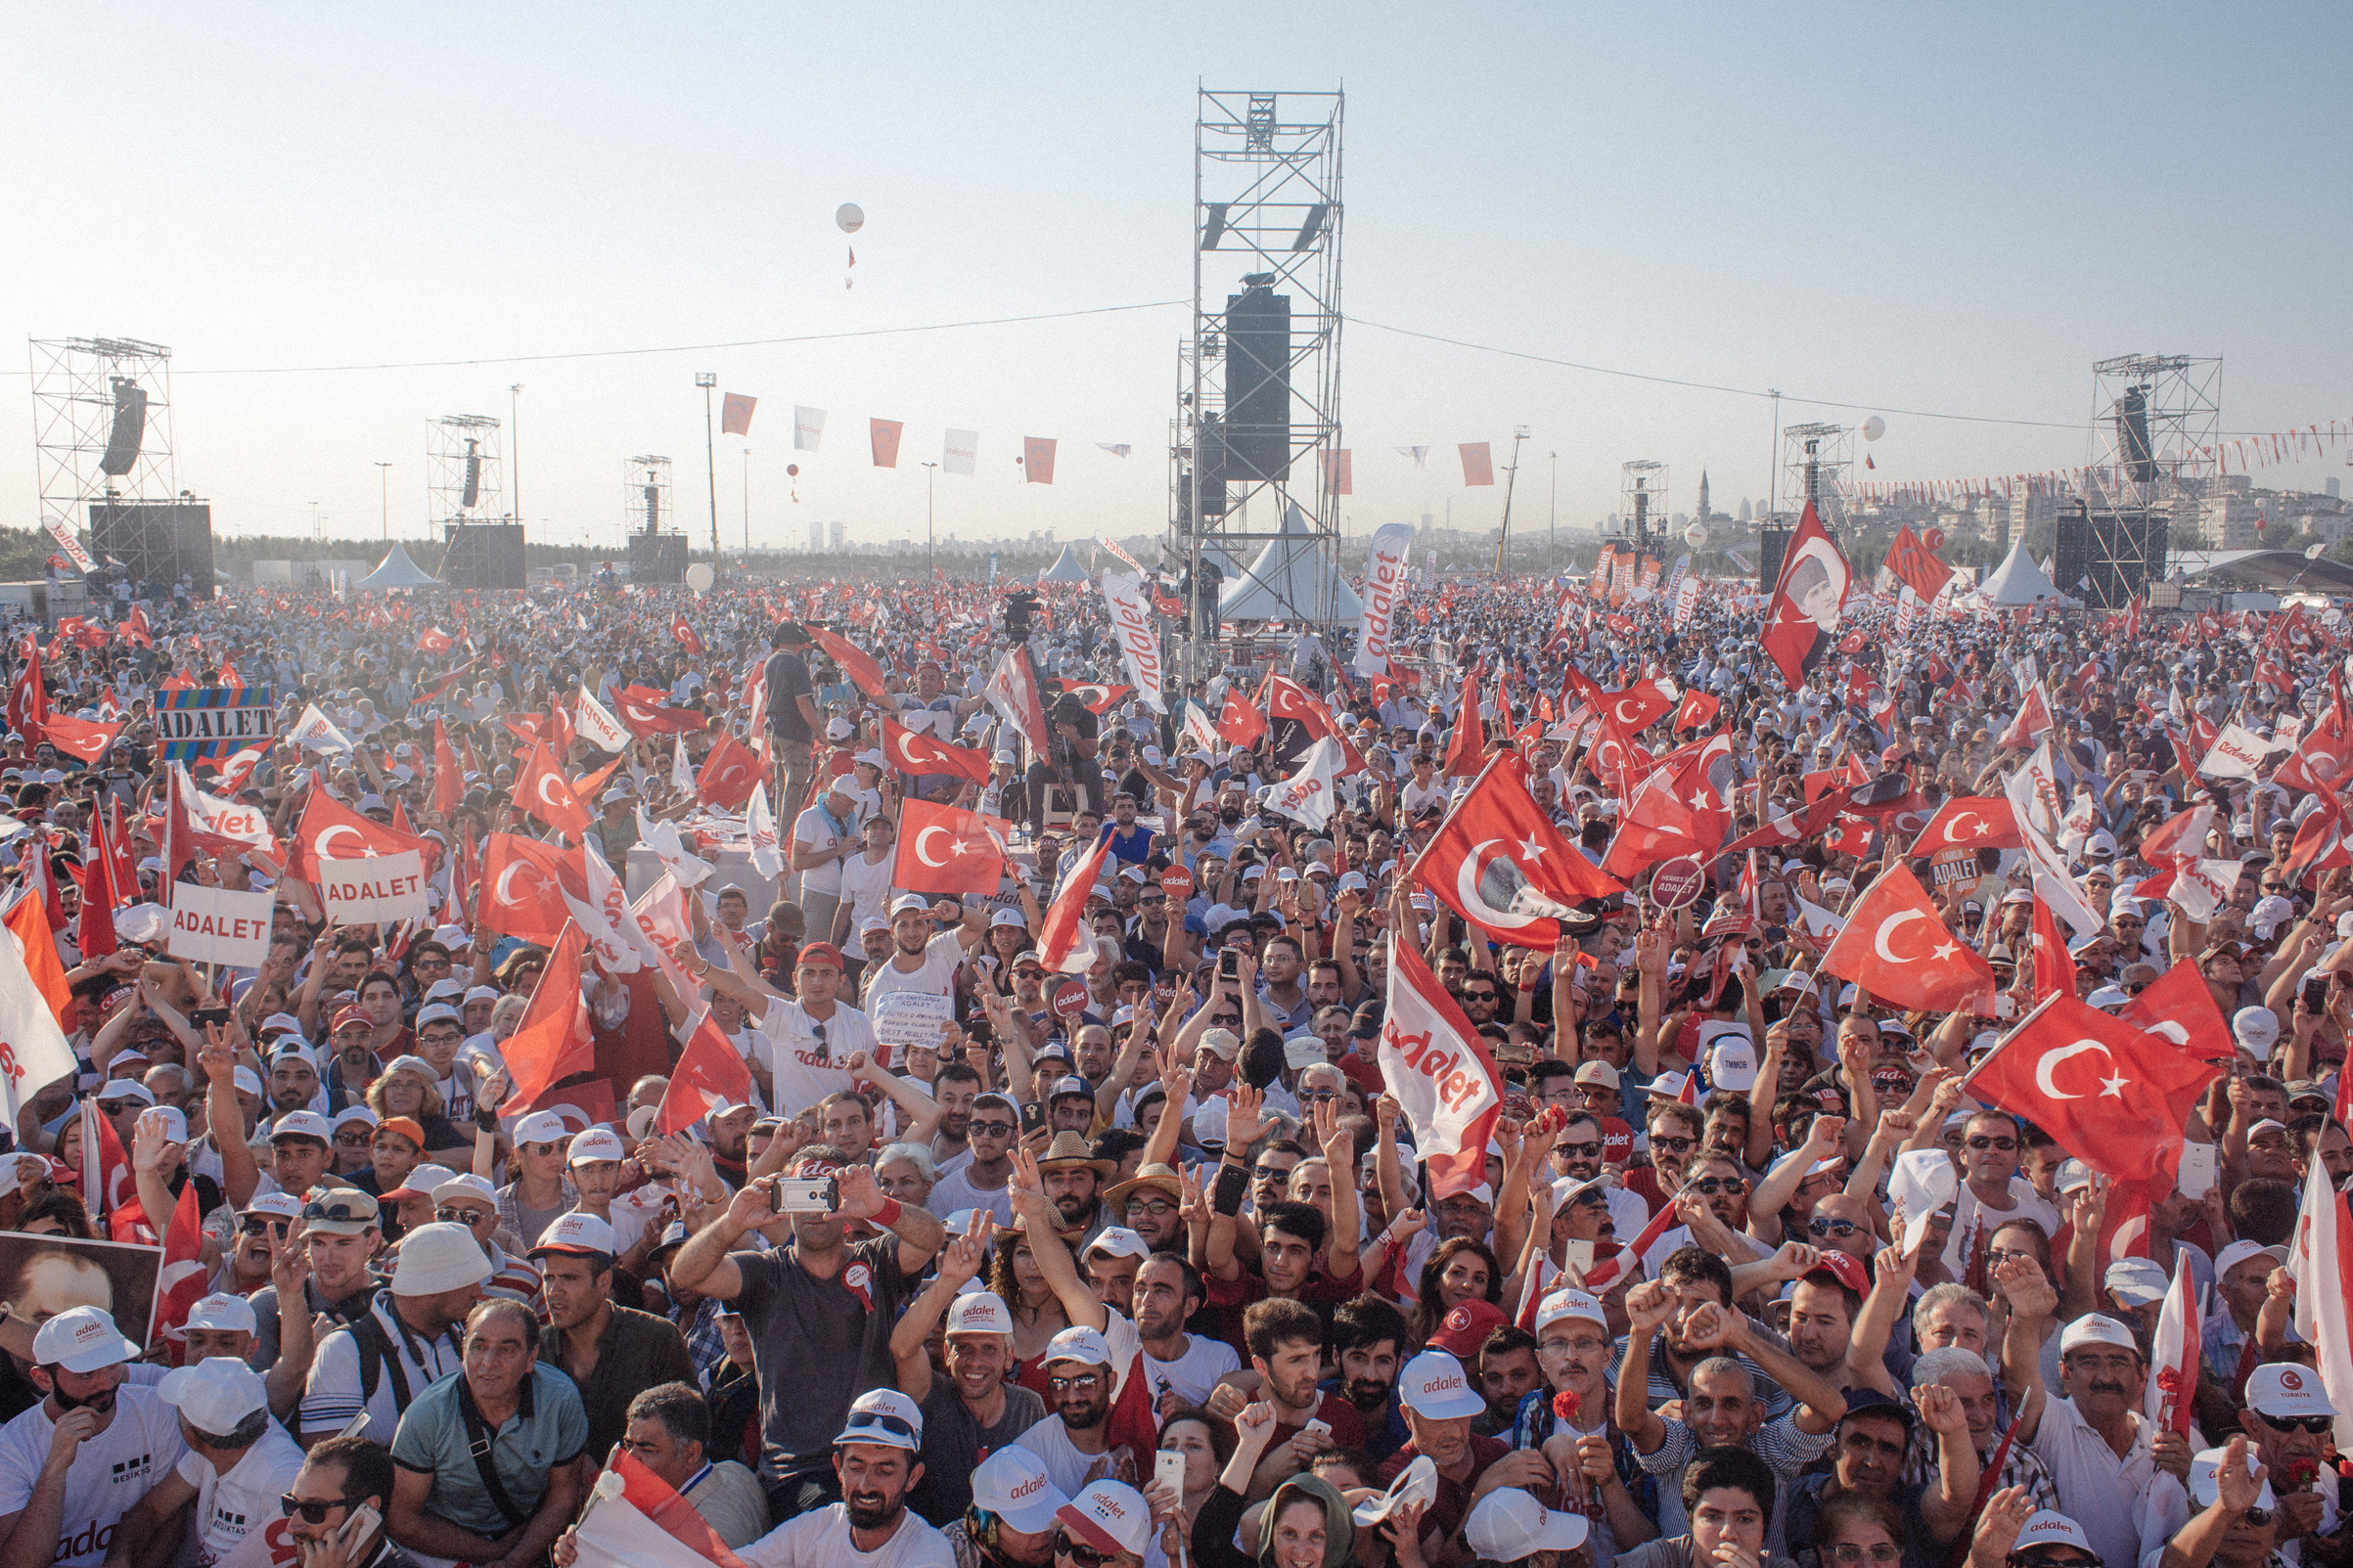 People wave flags during an anti-government rally in the Maltepe district in Istanbul, July 9, 2017. More than two million people gathered in Istanbul at the end of the 3 week Justice March led by the main opposition leader Republican People's Party (CHP), Kemal Kilicdaroglu. The rally represented the largest public display of opposition to the clampdown by Erdogan's government since he survived a failed military coup attempt nearly a year ago.